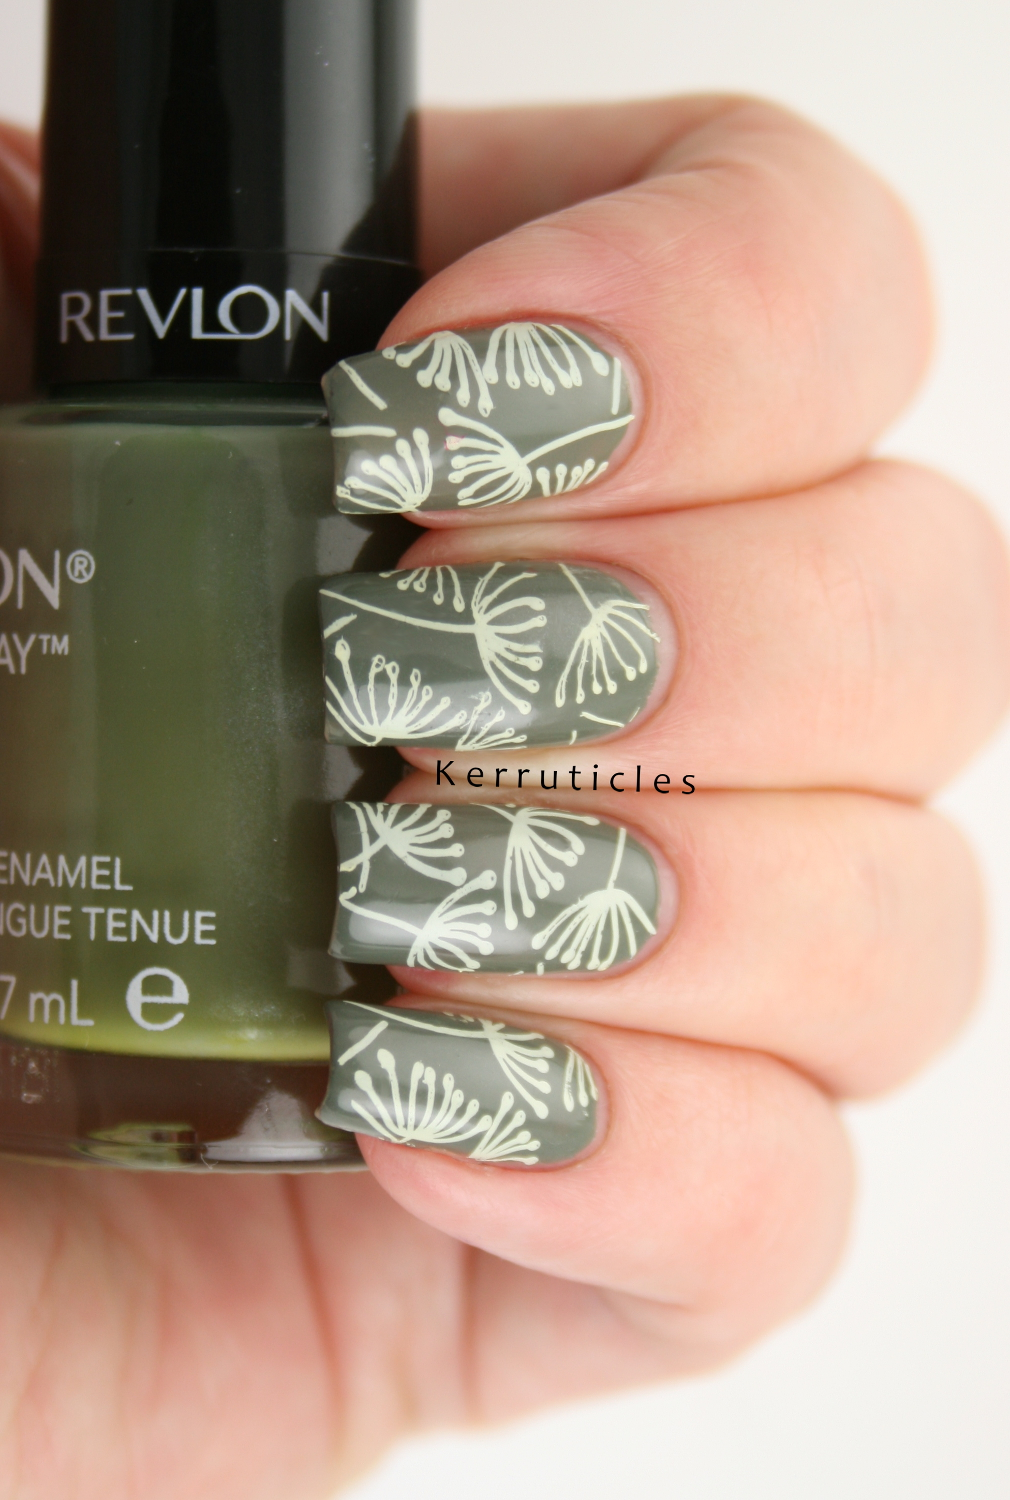 Dandelion nails things that fly 40 great nail art ideas dandelion nails things that fly 40 great nail art ideas prinsesfo Choice Image